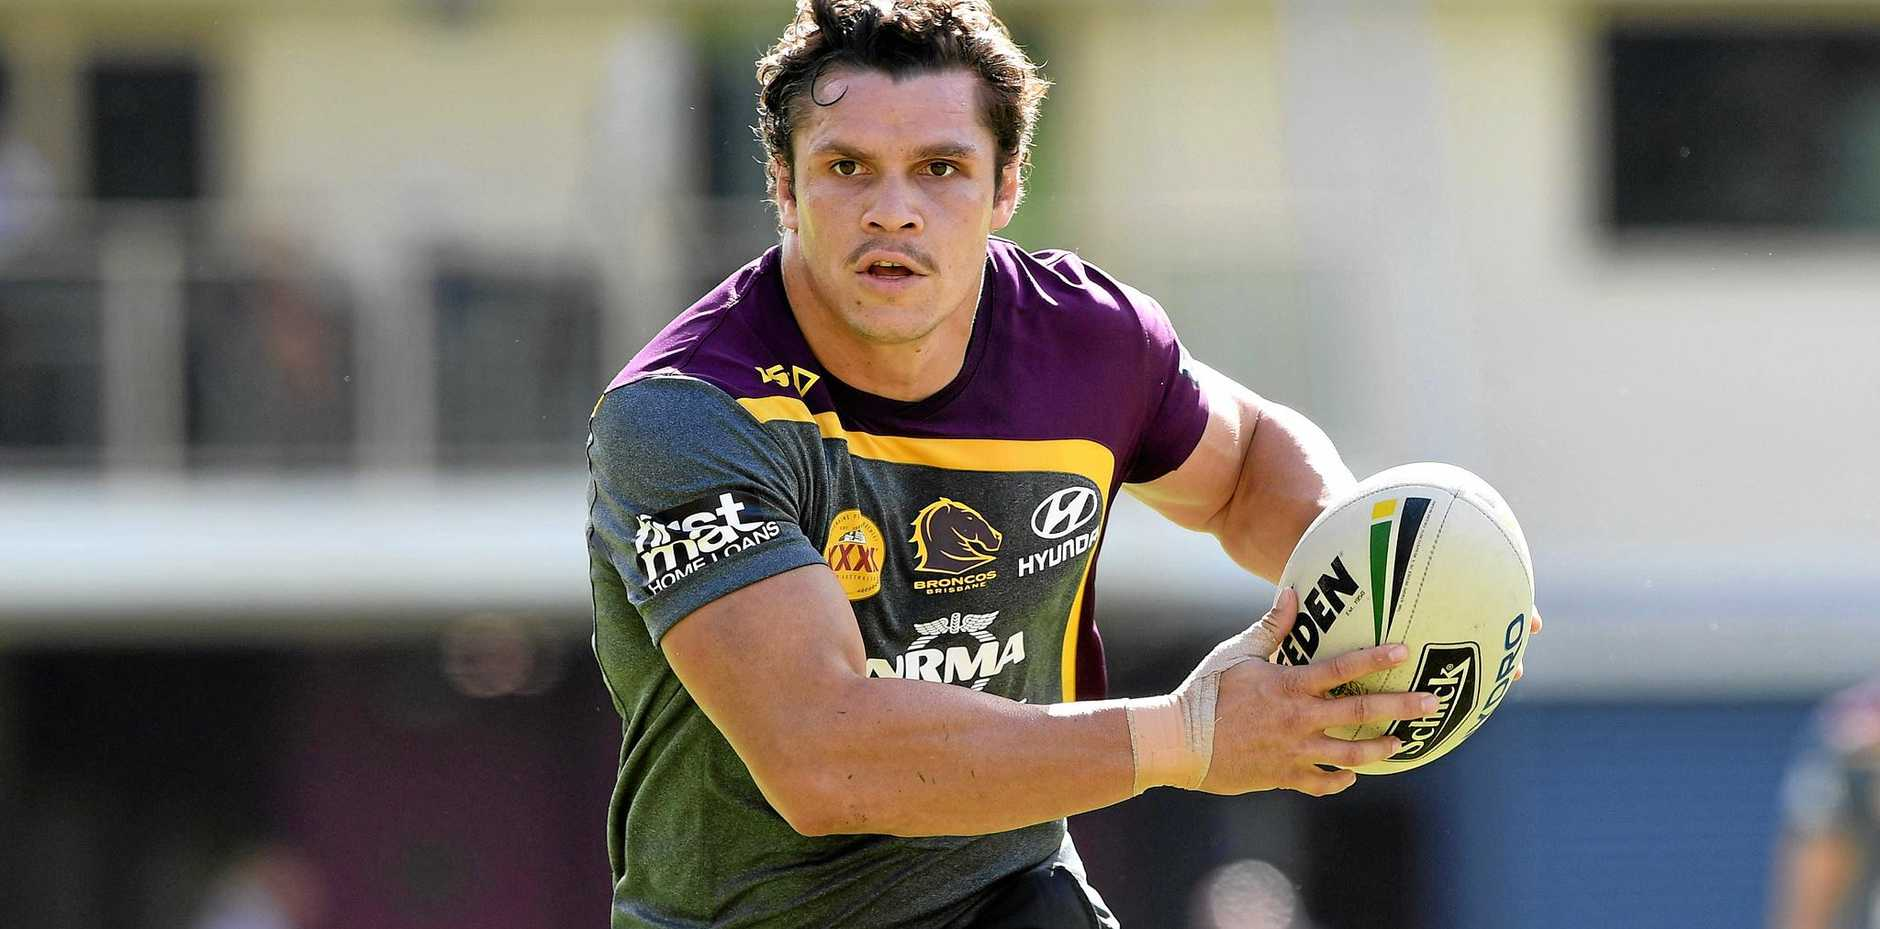 Brisbane Broncos player James Roberts runs with the ball during a training session at Red Hill.